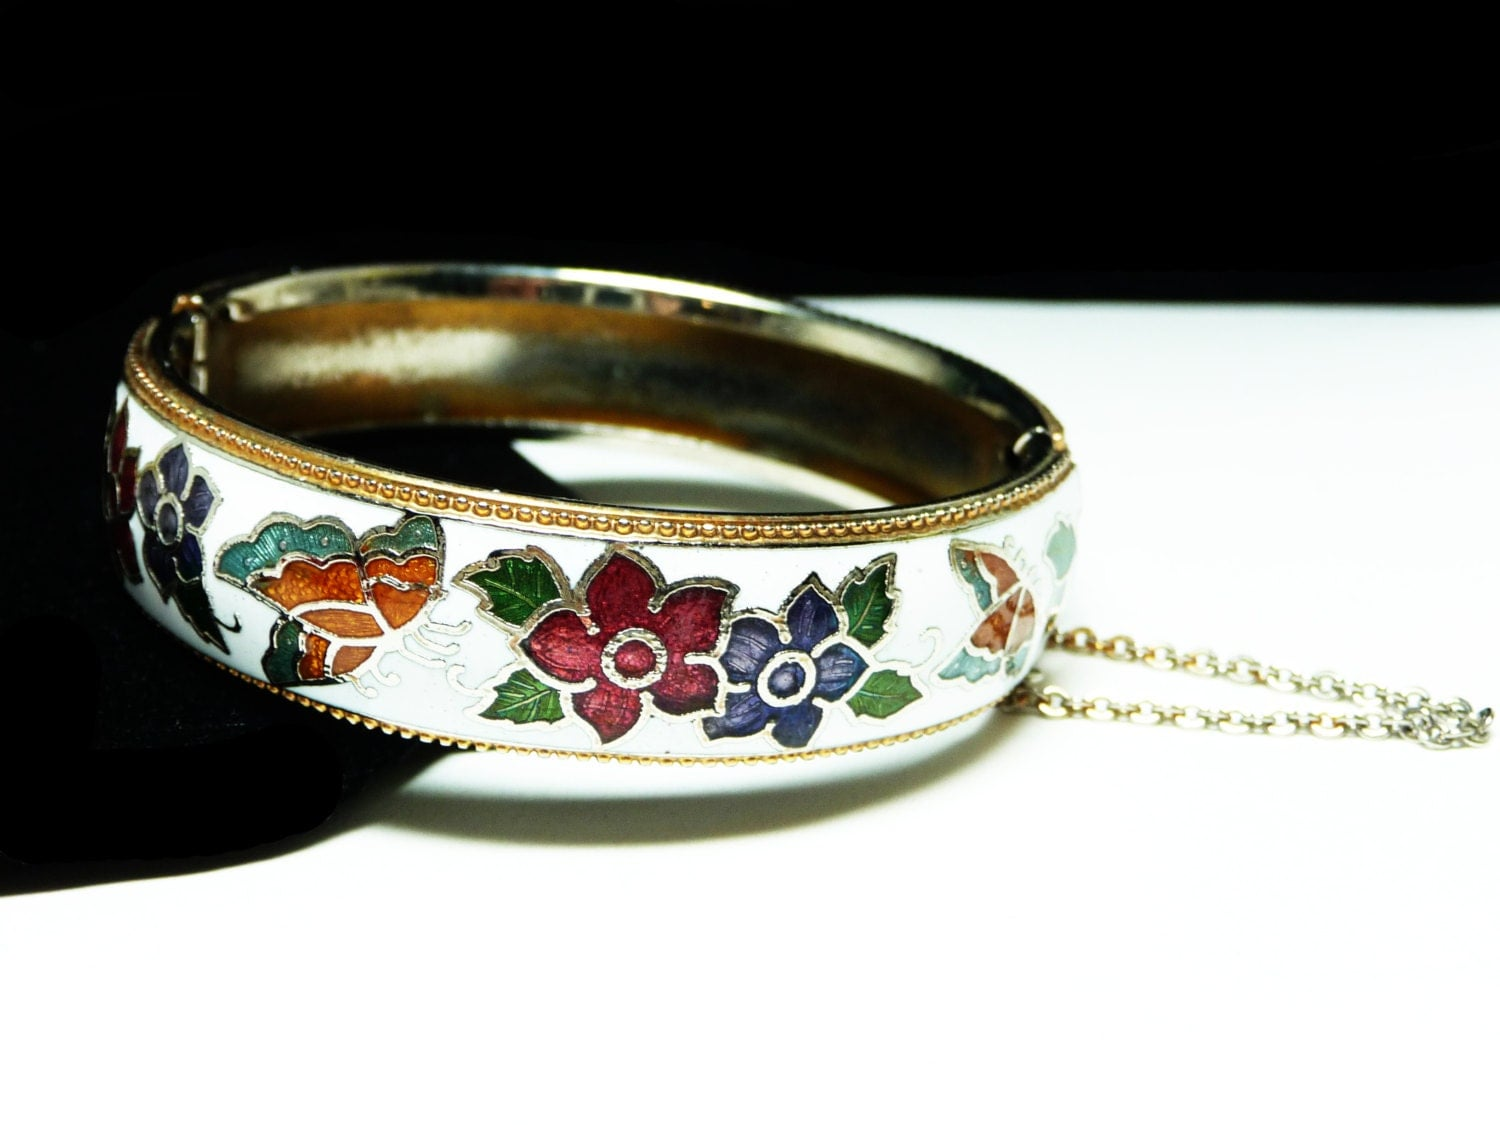 White Cloisonne Hinged Bangle Bracelet With Butterflies And